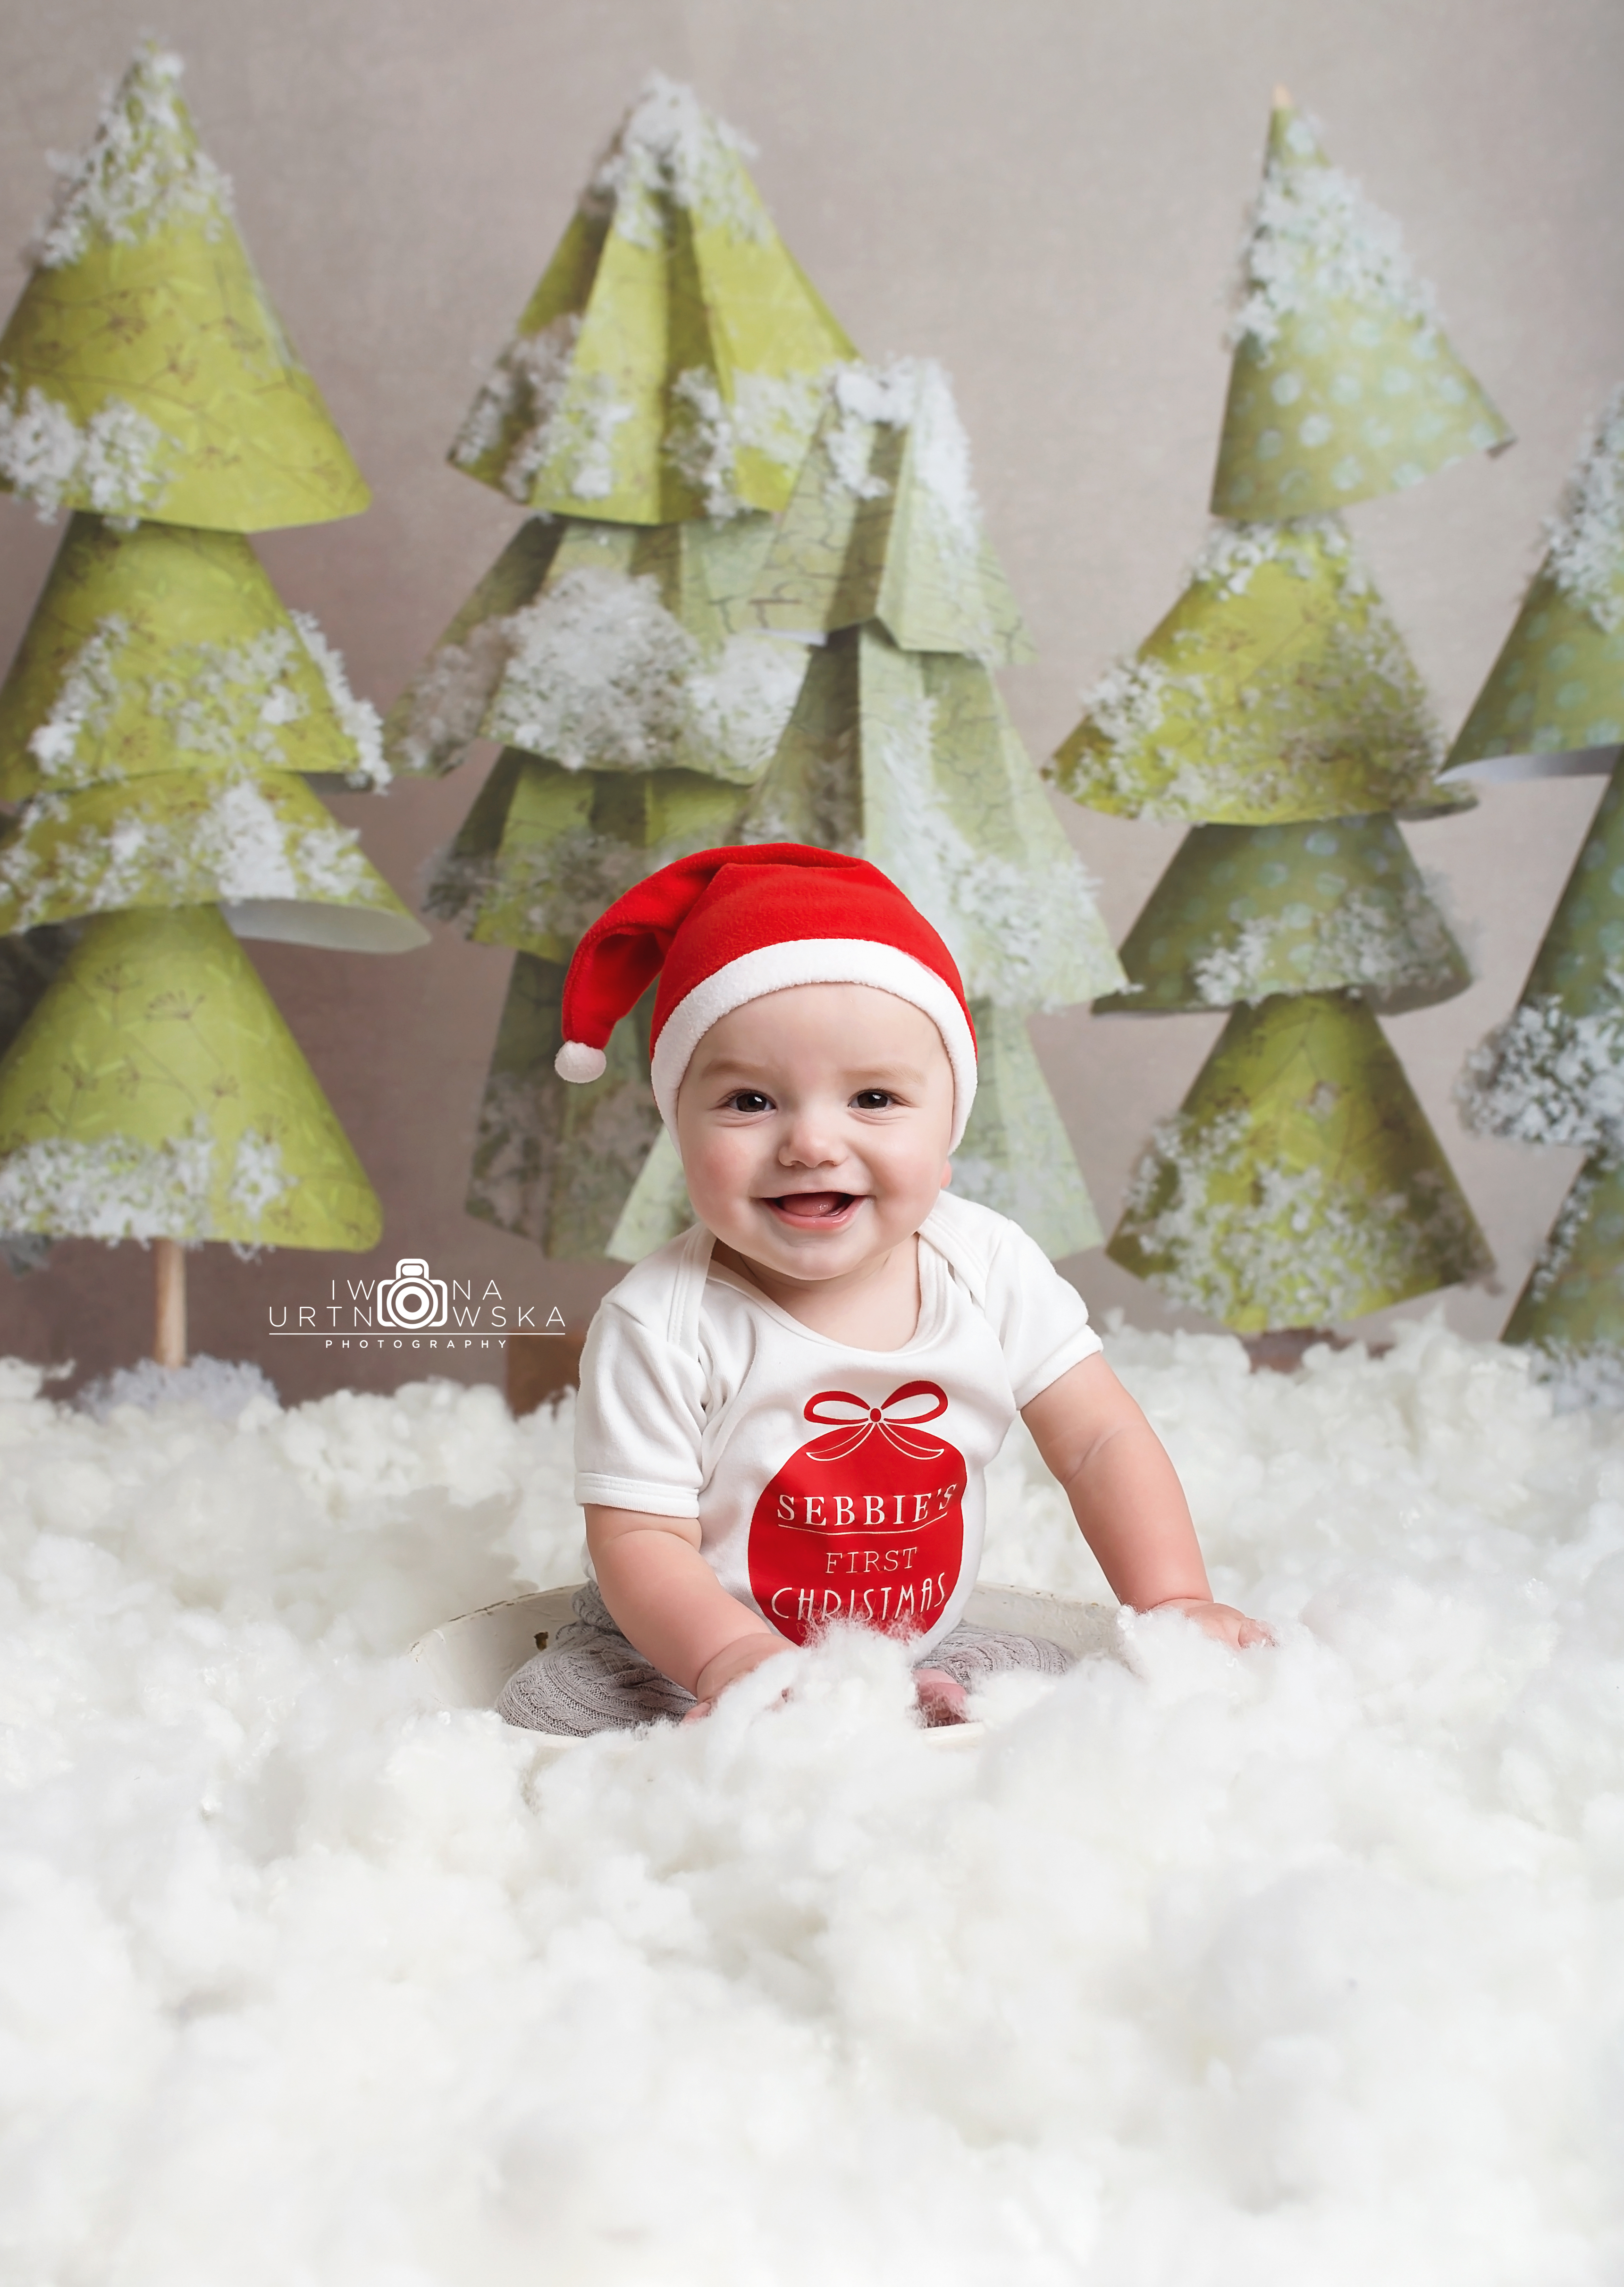 Christmas Photo shoot Telford, Shropshire